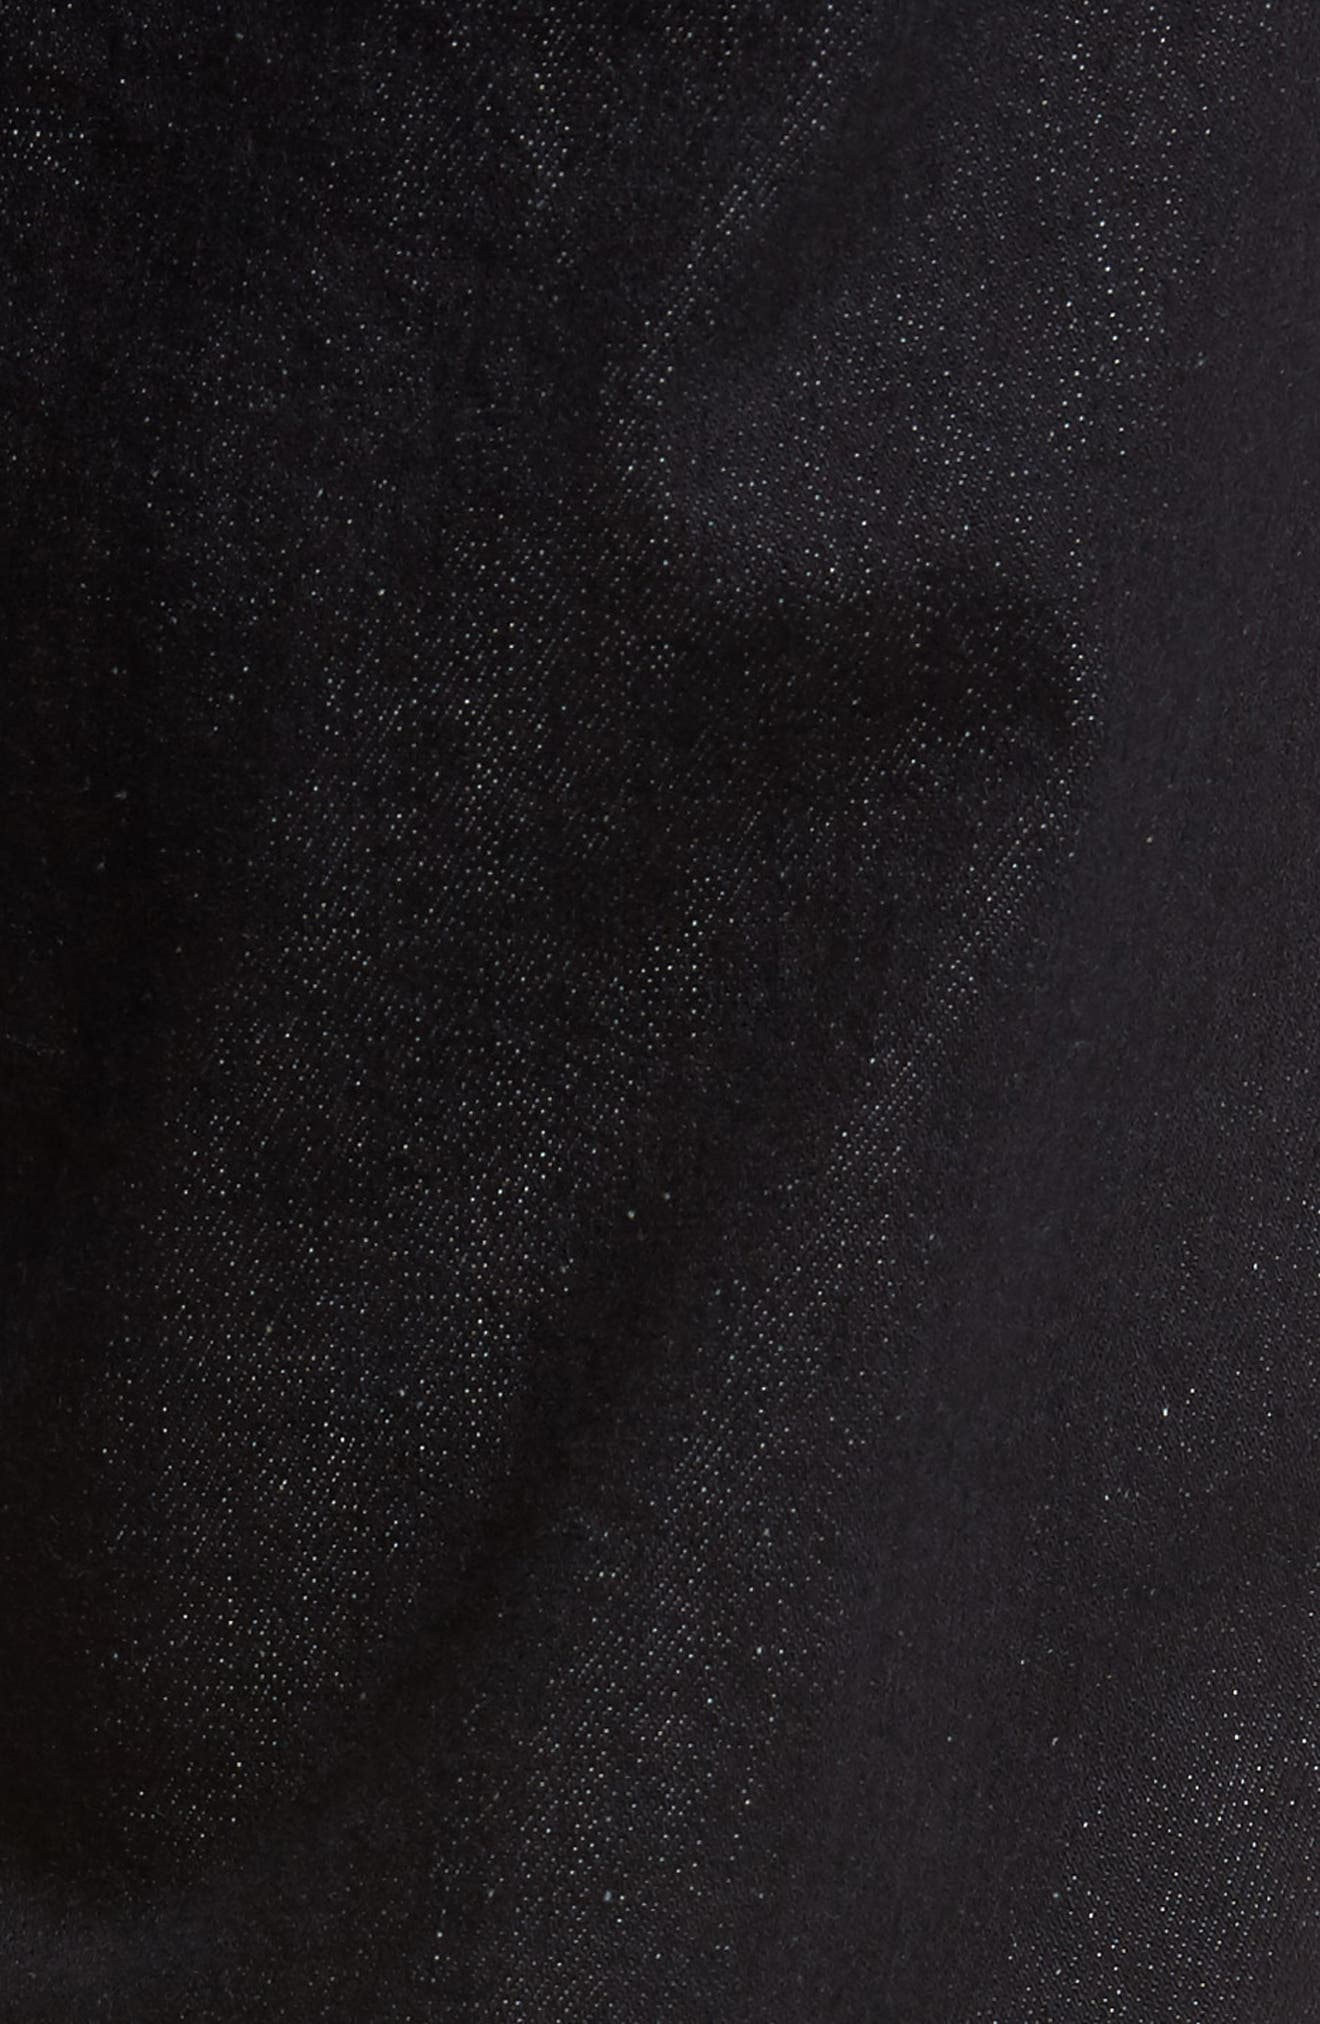 James Relaxed Fit Jeans,                             Alternate thumbnail 5, color,                             400